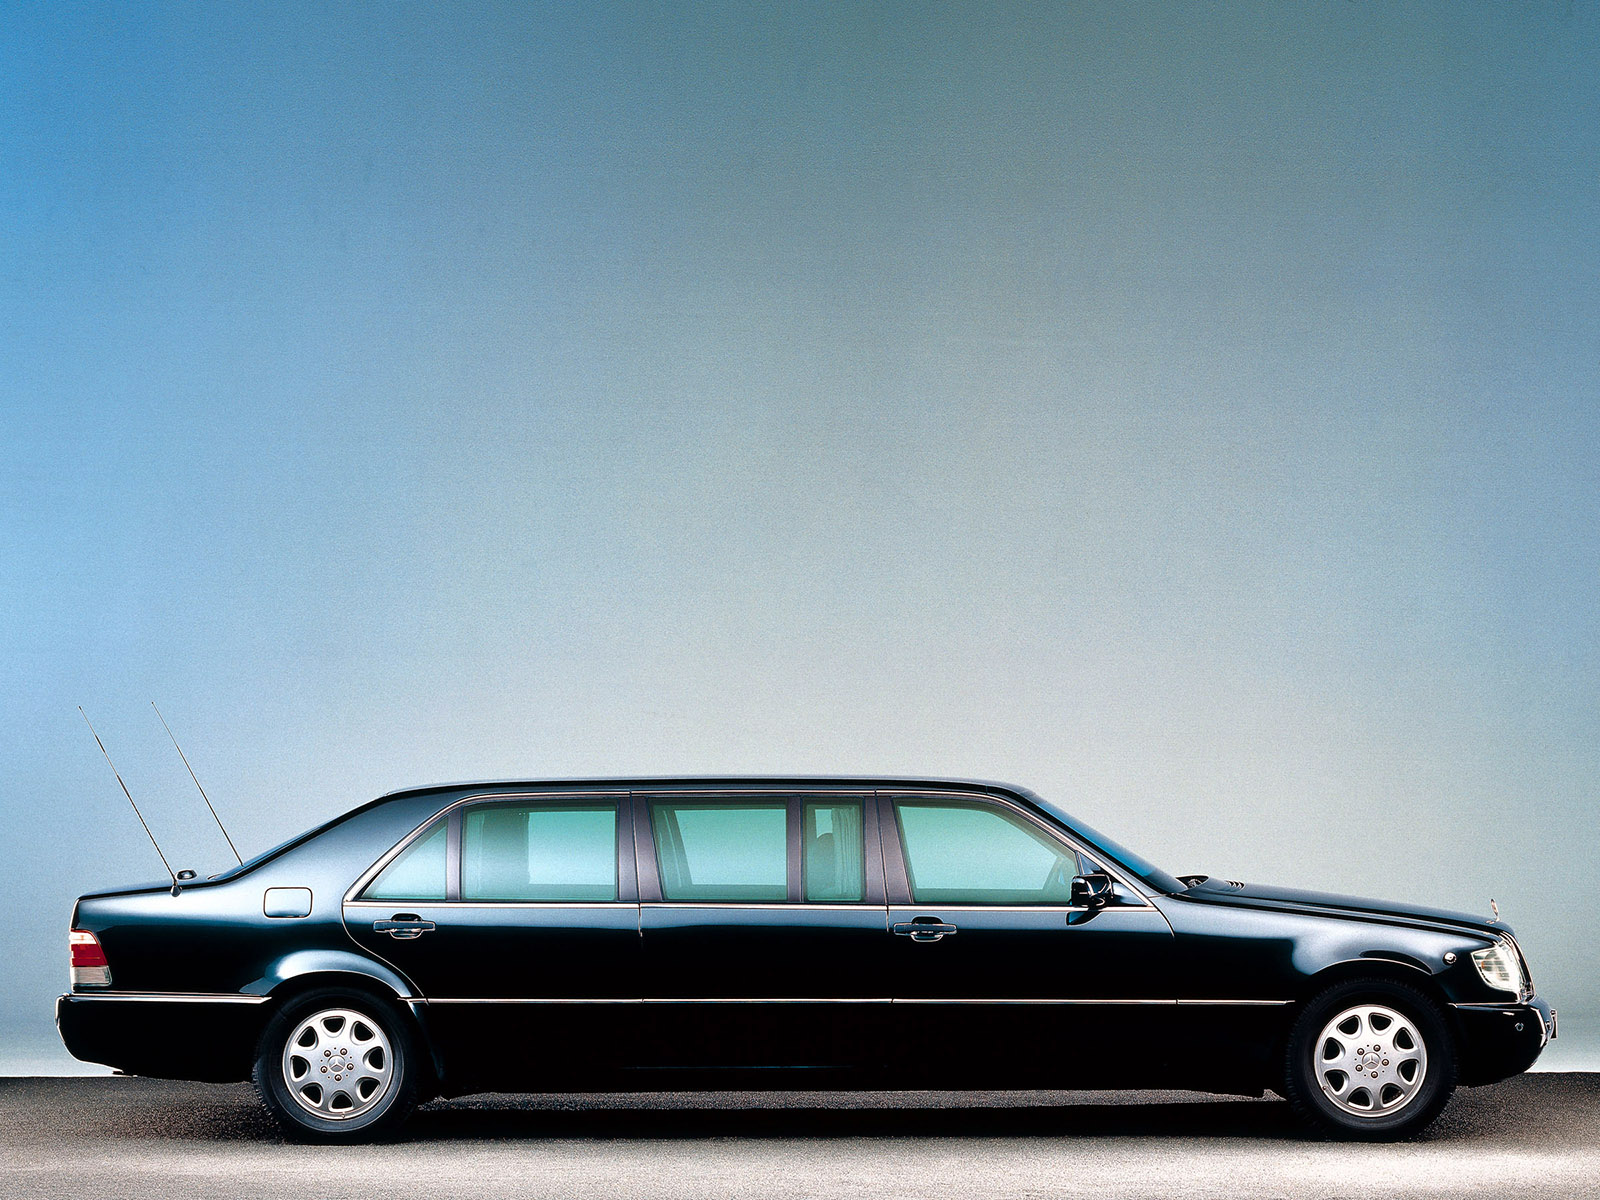 Benz s class w140 600sel or s600 m120 394 hp w140 information - Mercedes Benz S Class W140 Picture 39431 Mercedes Benz Photo